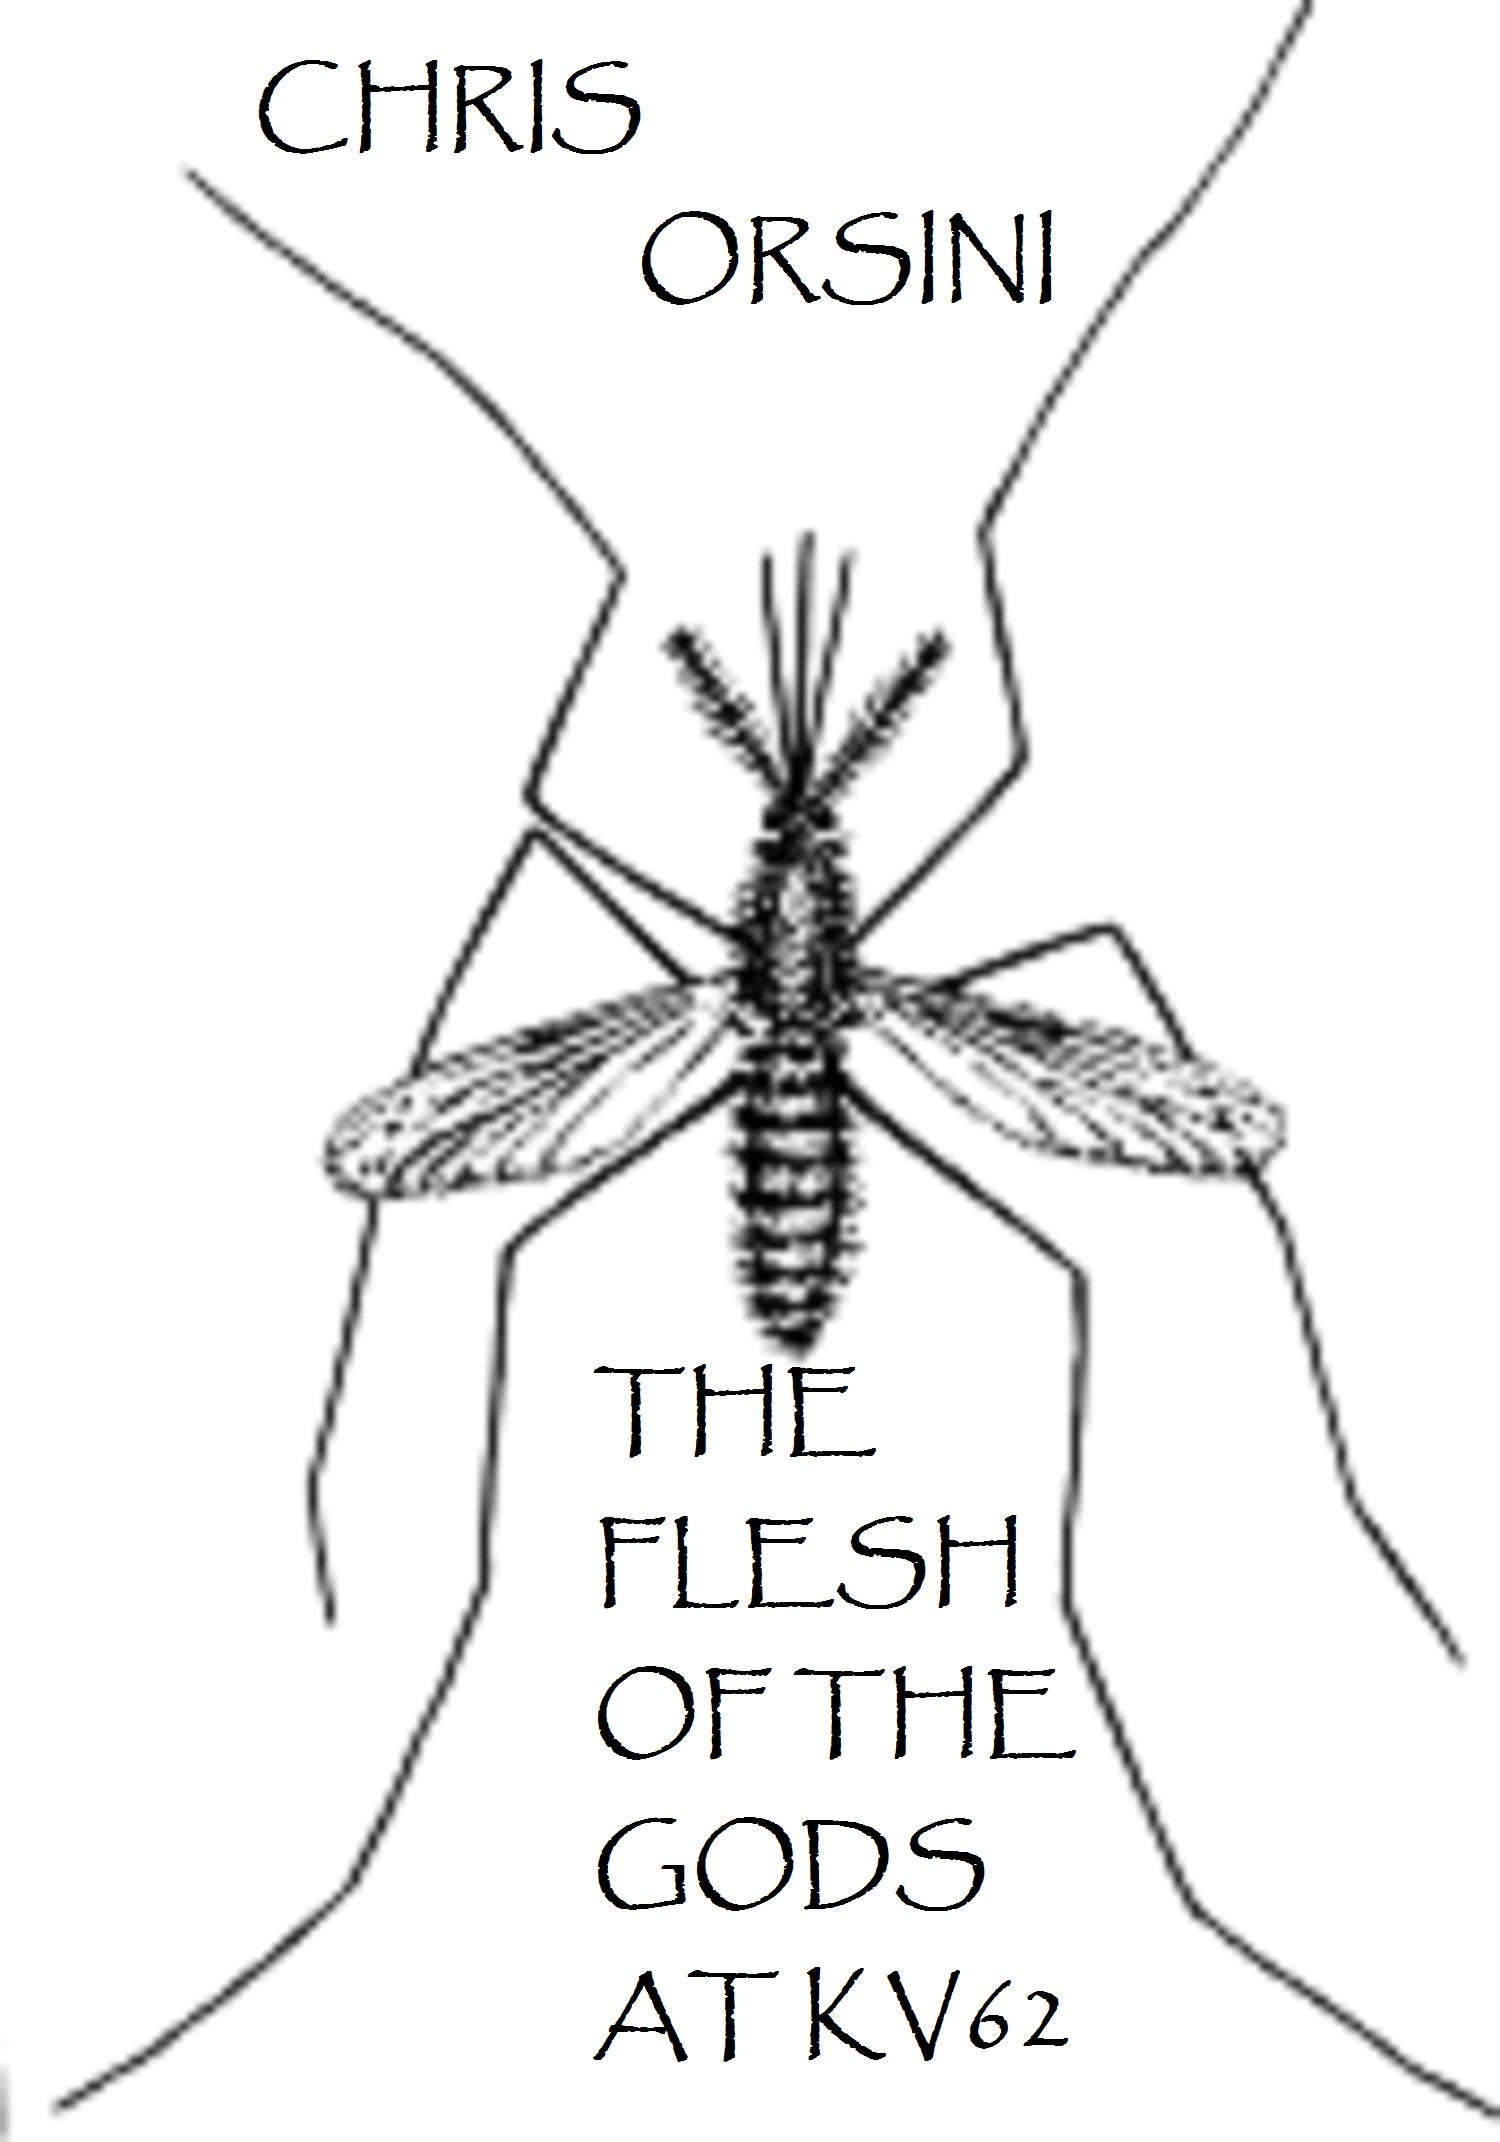 The Flesh of the Gods at Kv62